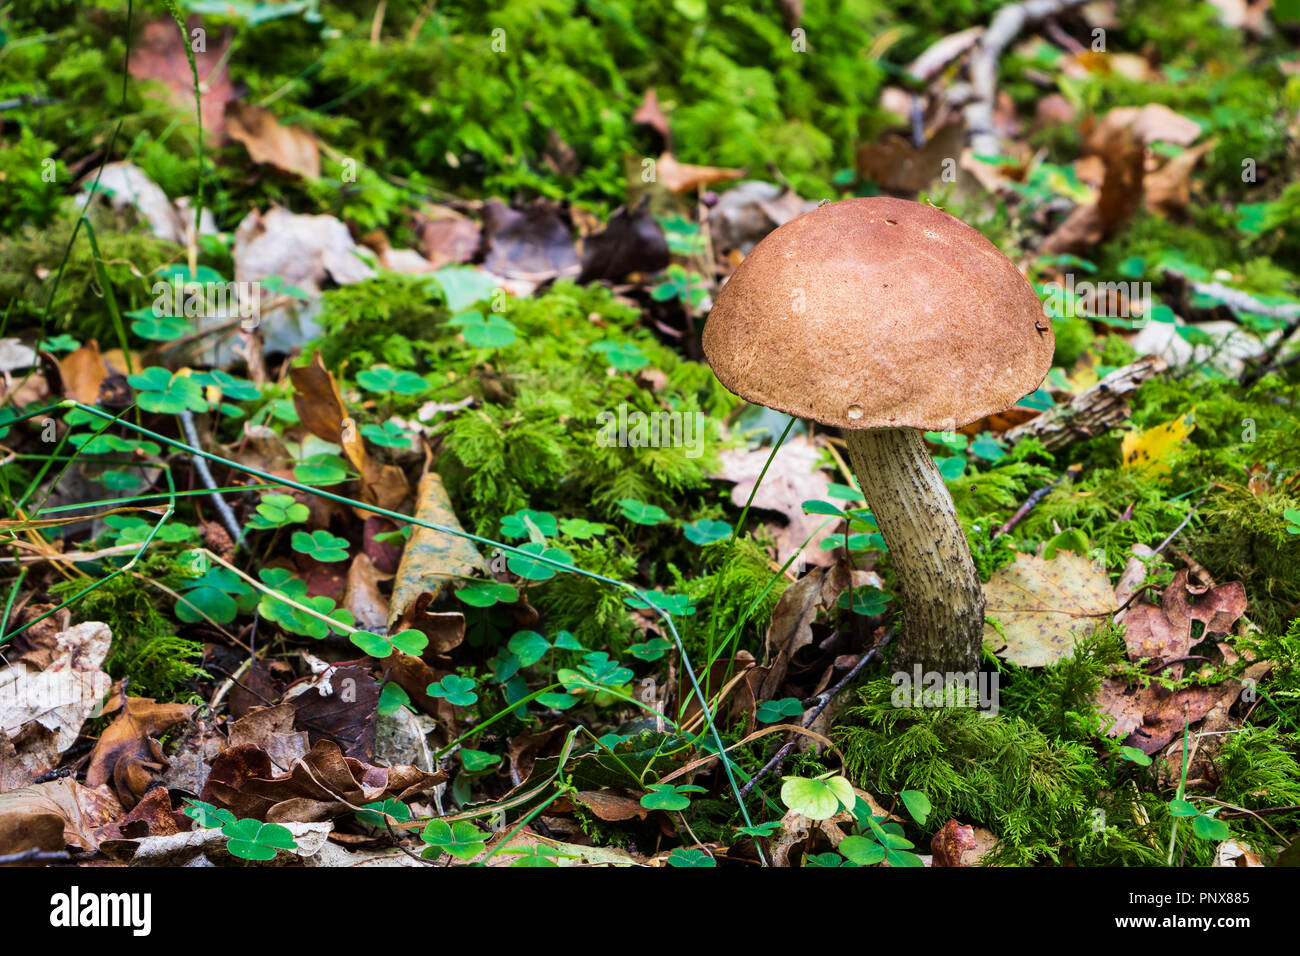 Brown birch rough stalk edible fungi on a woodland floor in Autumn. Related to the Cep or Penny Bun in the bolete family. - Stock Image